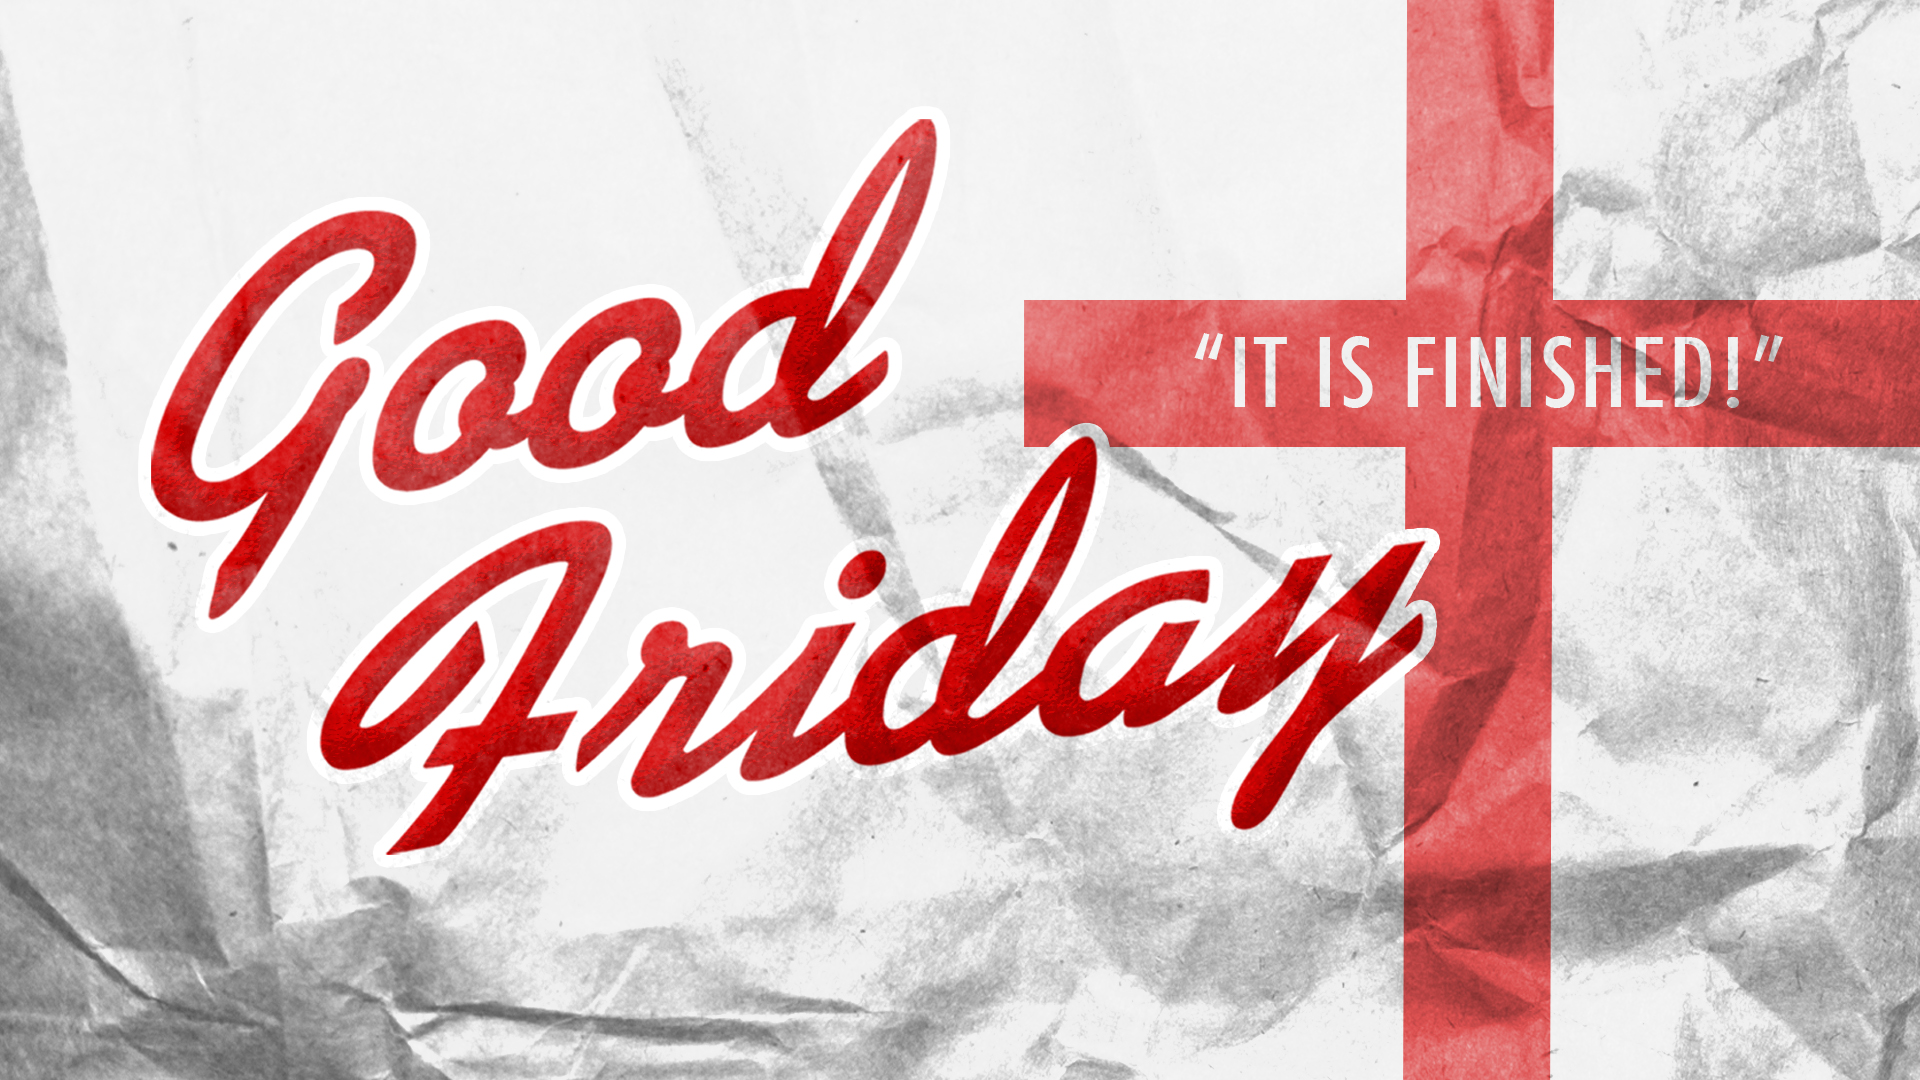 Good Friday Wishes Messages Quotes Sayings Images Sms 1920x1080